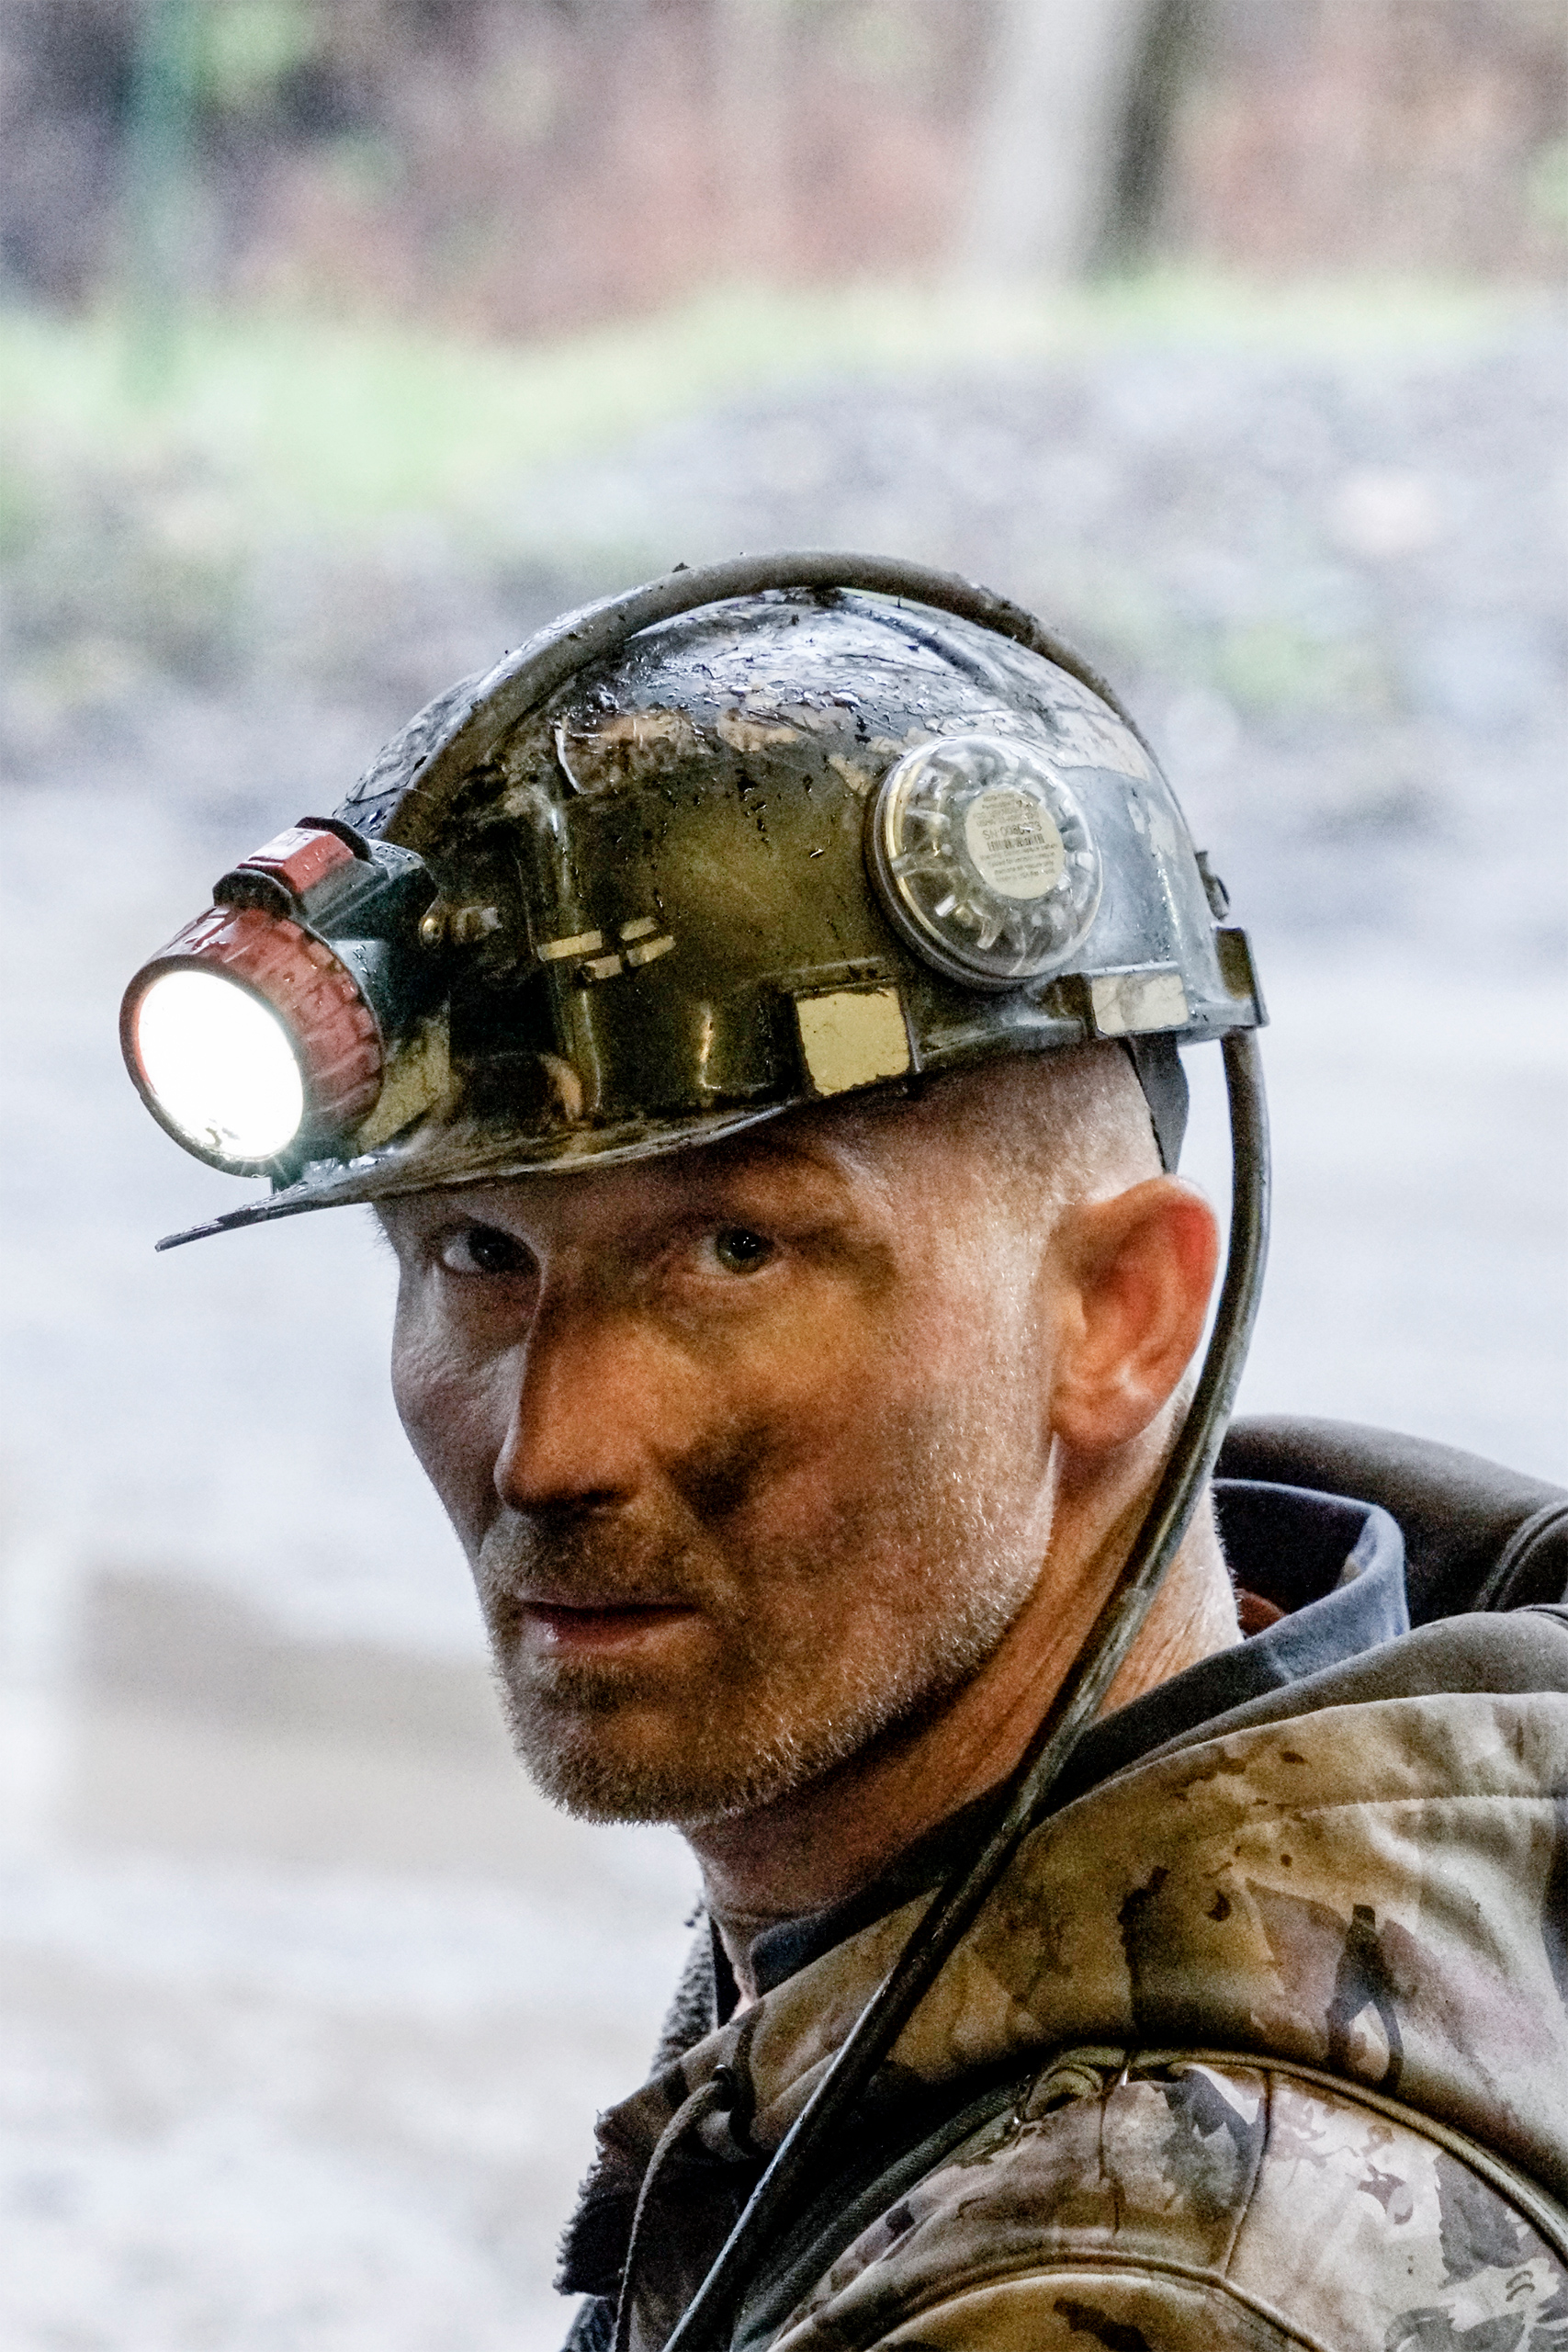 A coal miner appears at a Southern Coal Corporation underground coal mine in Monroe County, W.Va., on Mar. 17, 2017.